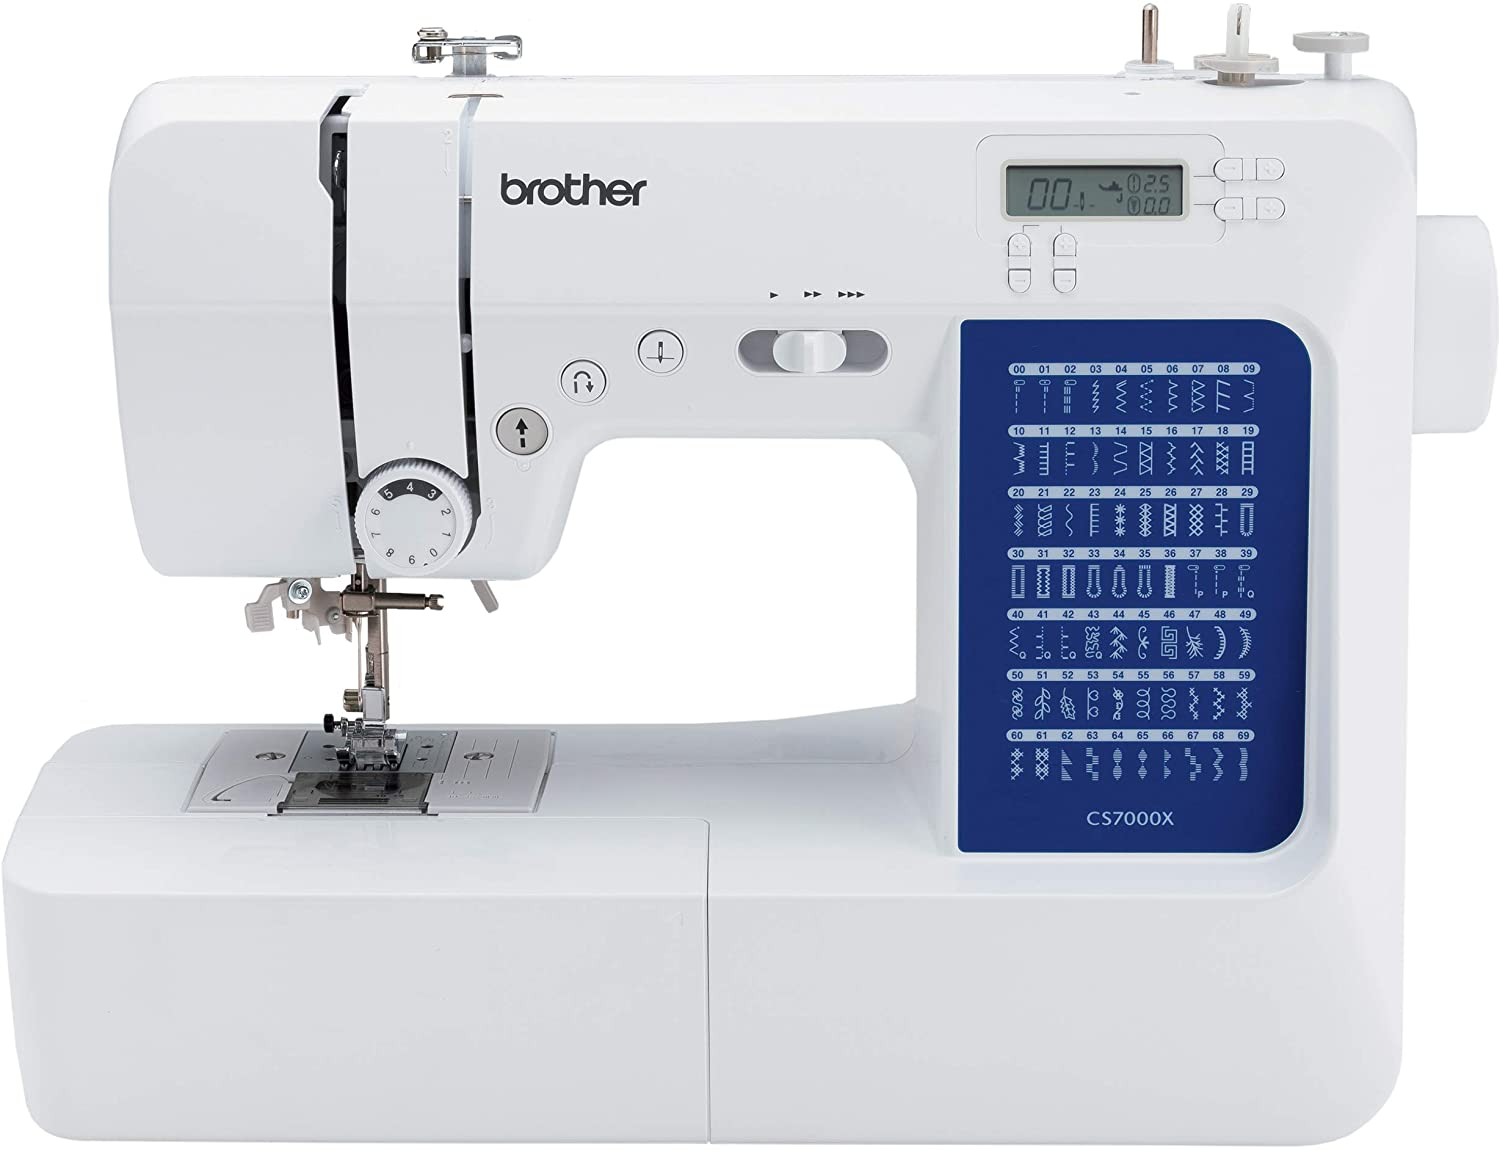 Brother CS7000X Computerized Sewing and Quilting Machine - Best Sewing Machine for Quilting Under $500